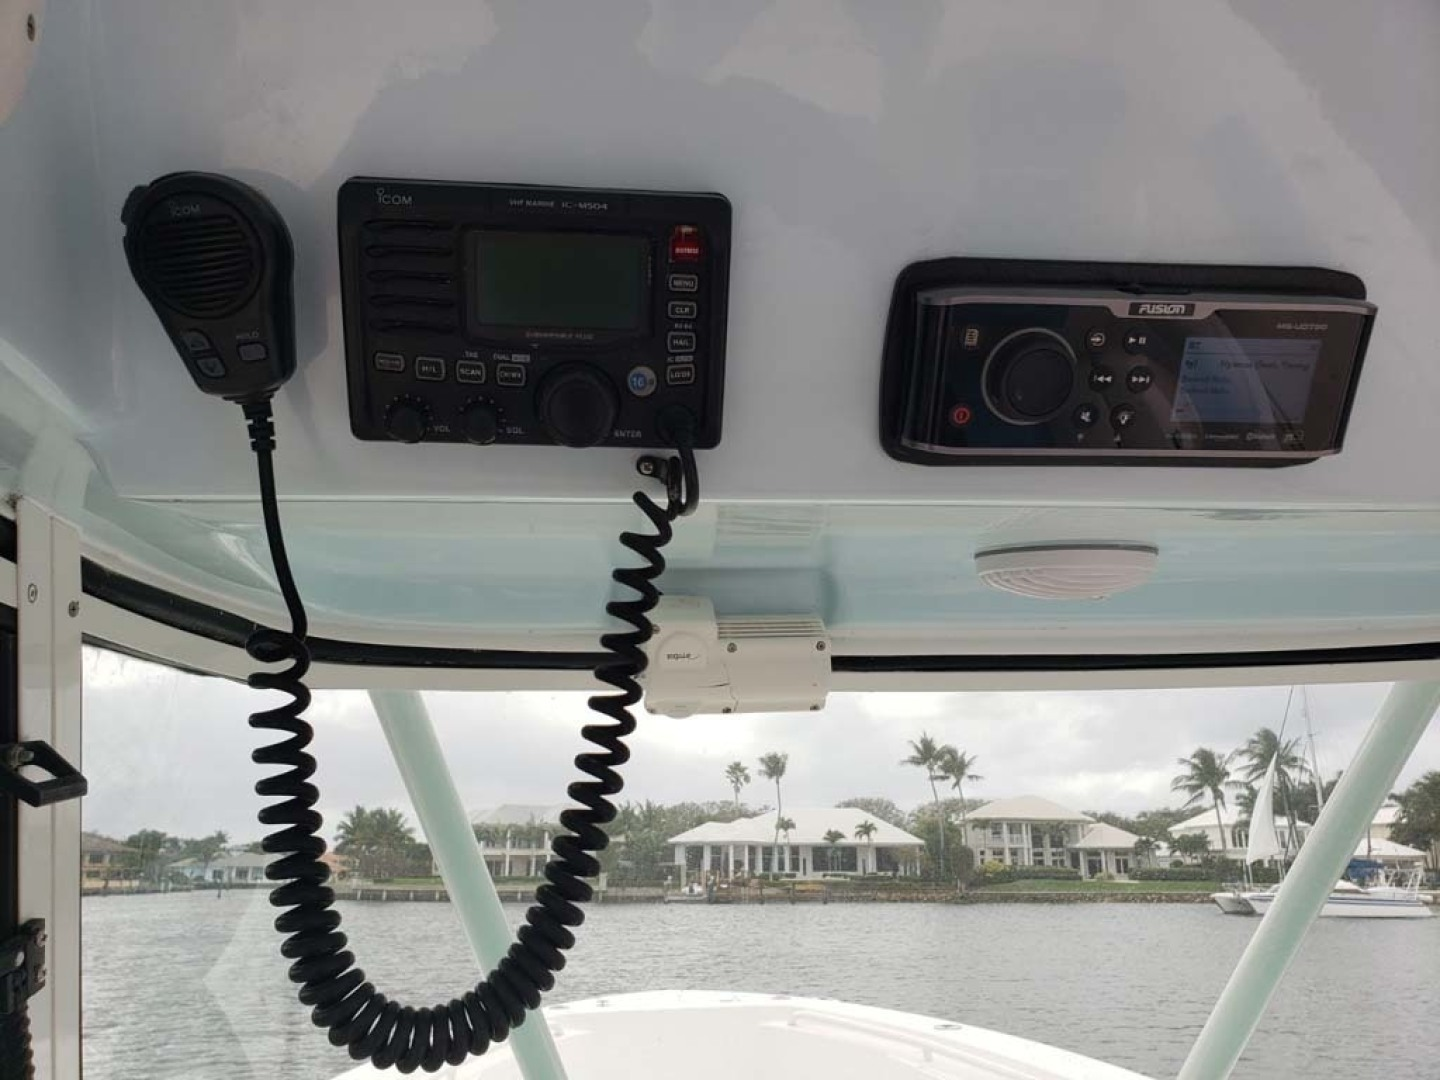 Everglades-350 CC 2011-Sea Predator Palm Beach Gardens-Florida-United States-Icom VHF M504 And Fusion MS UD750-1359624 | Thumbnail